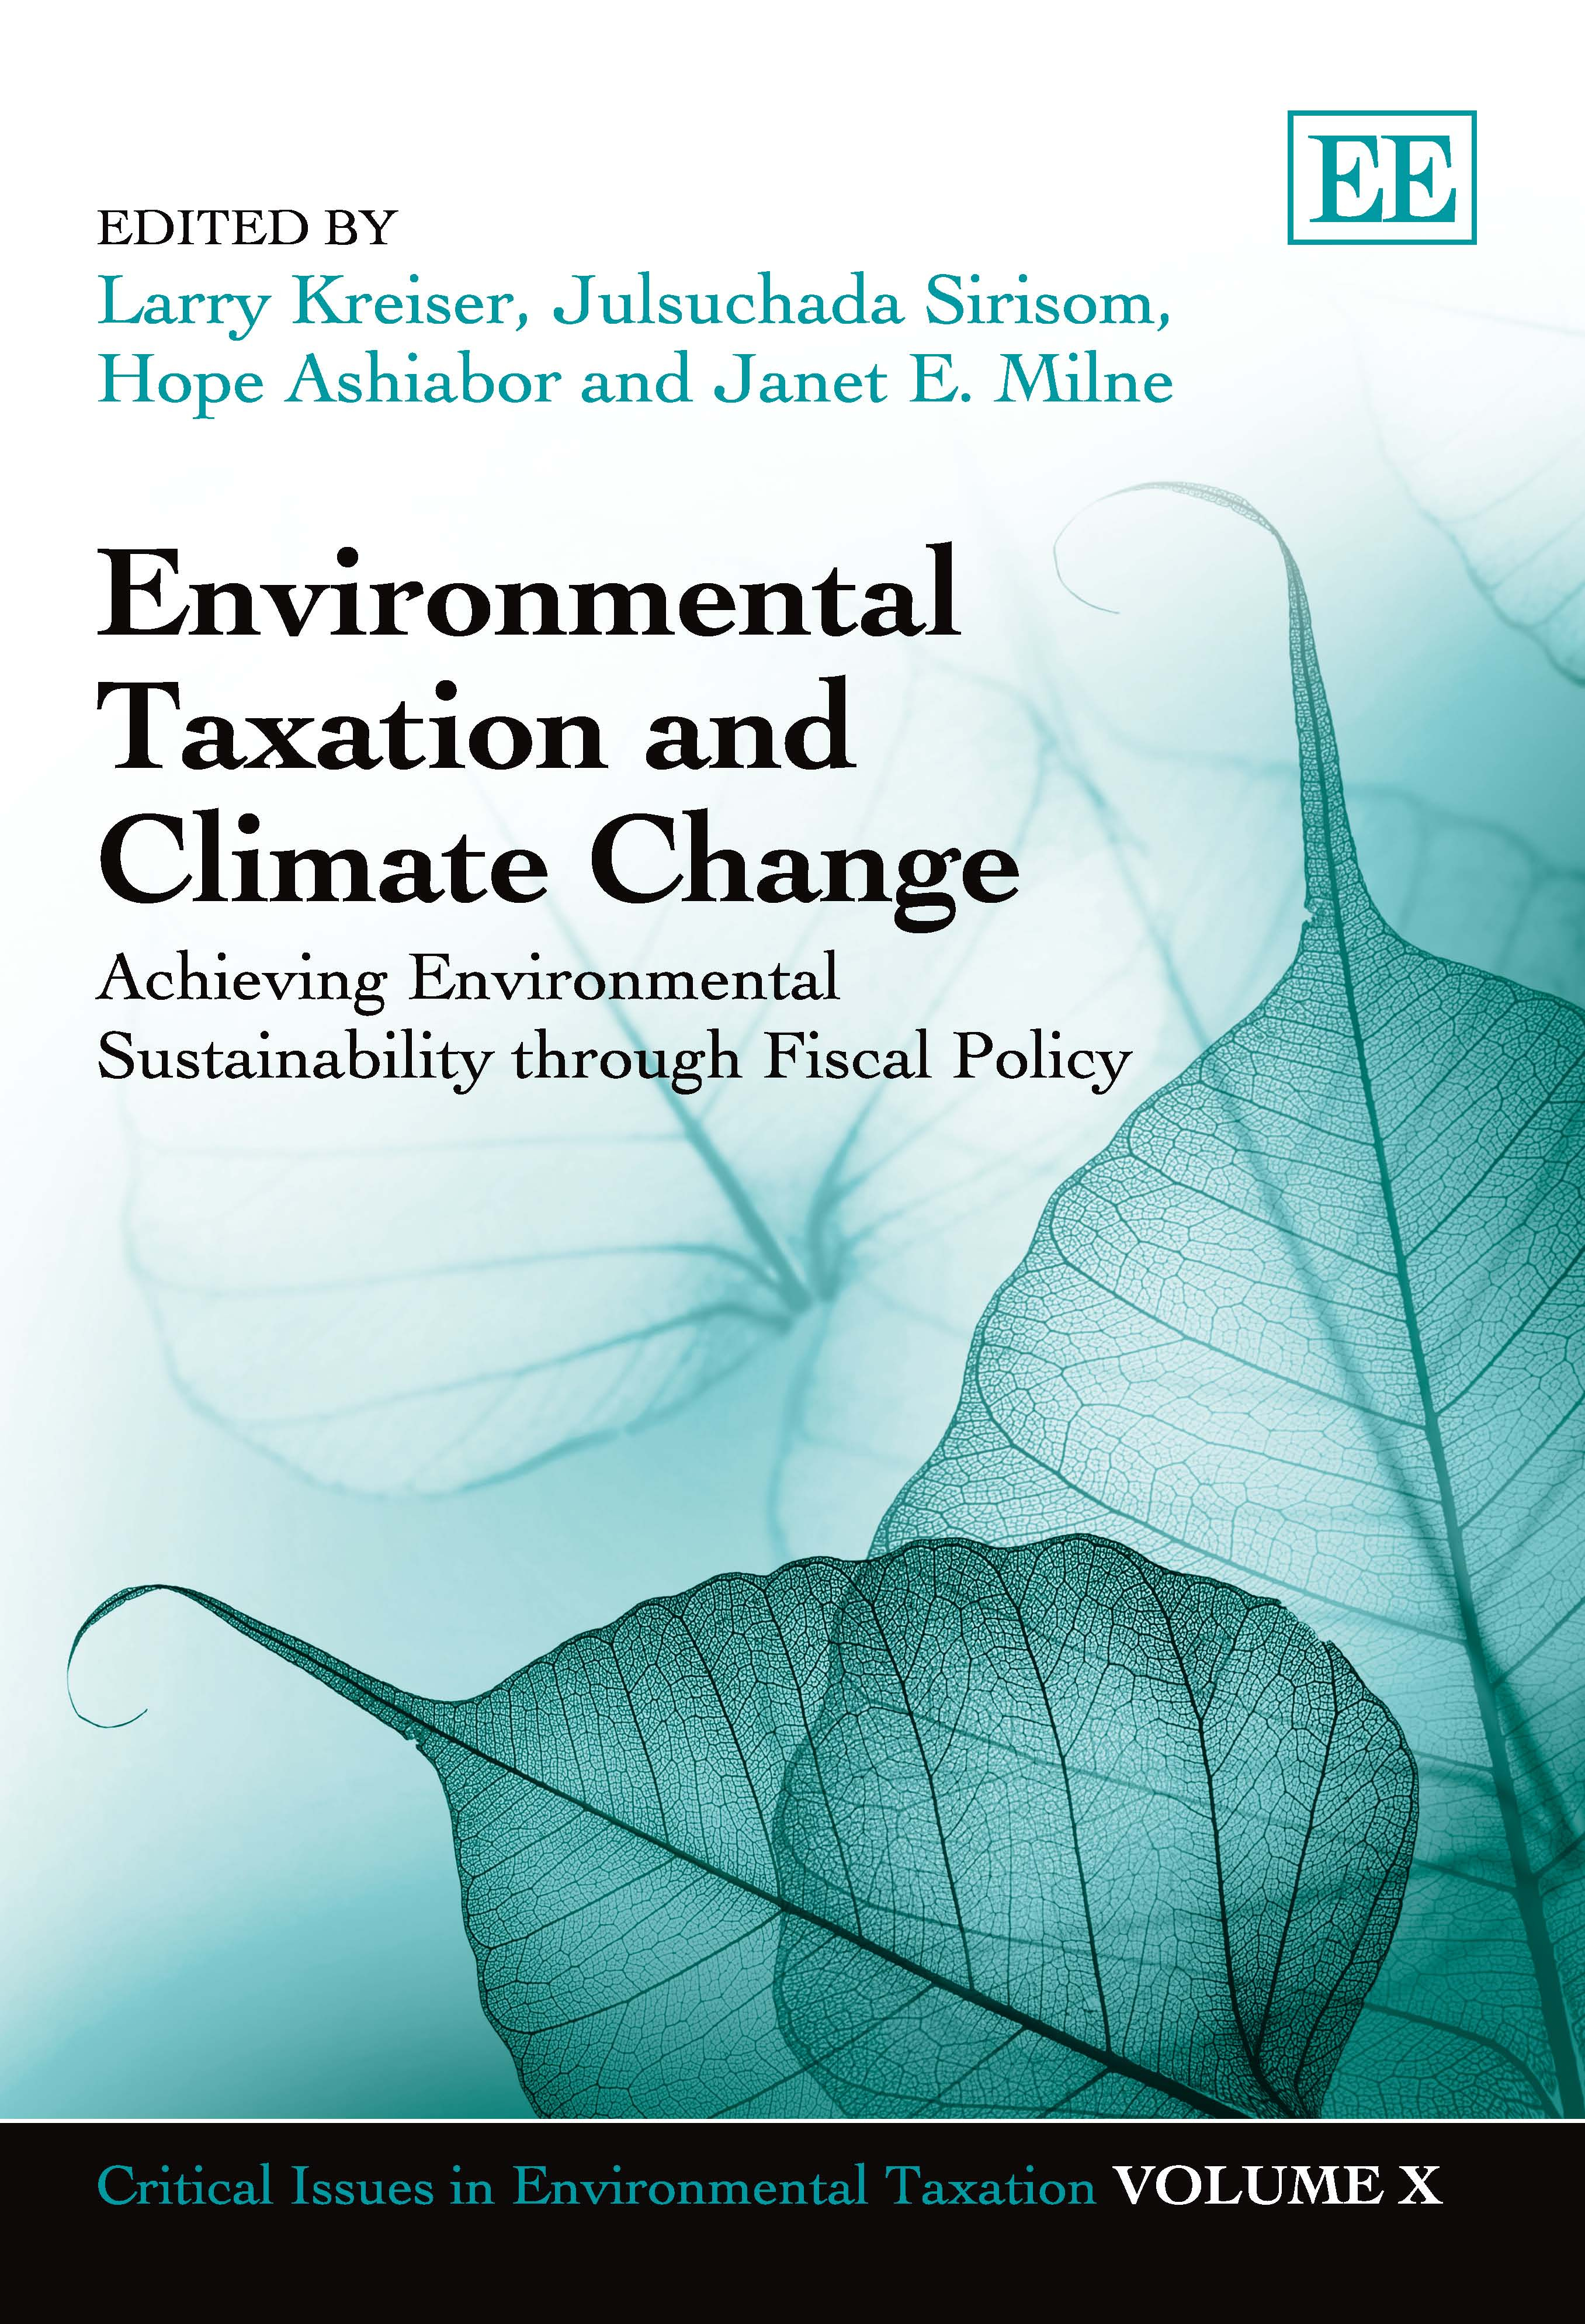 Environmental Taxation and Climate Change